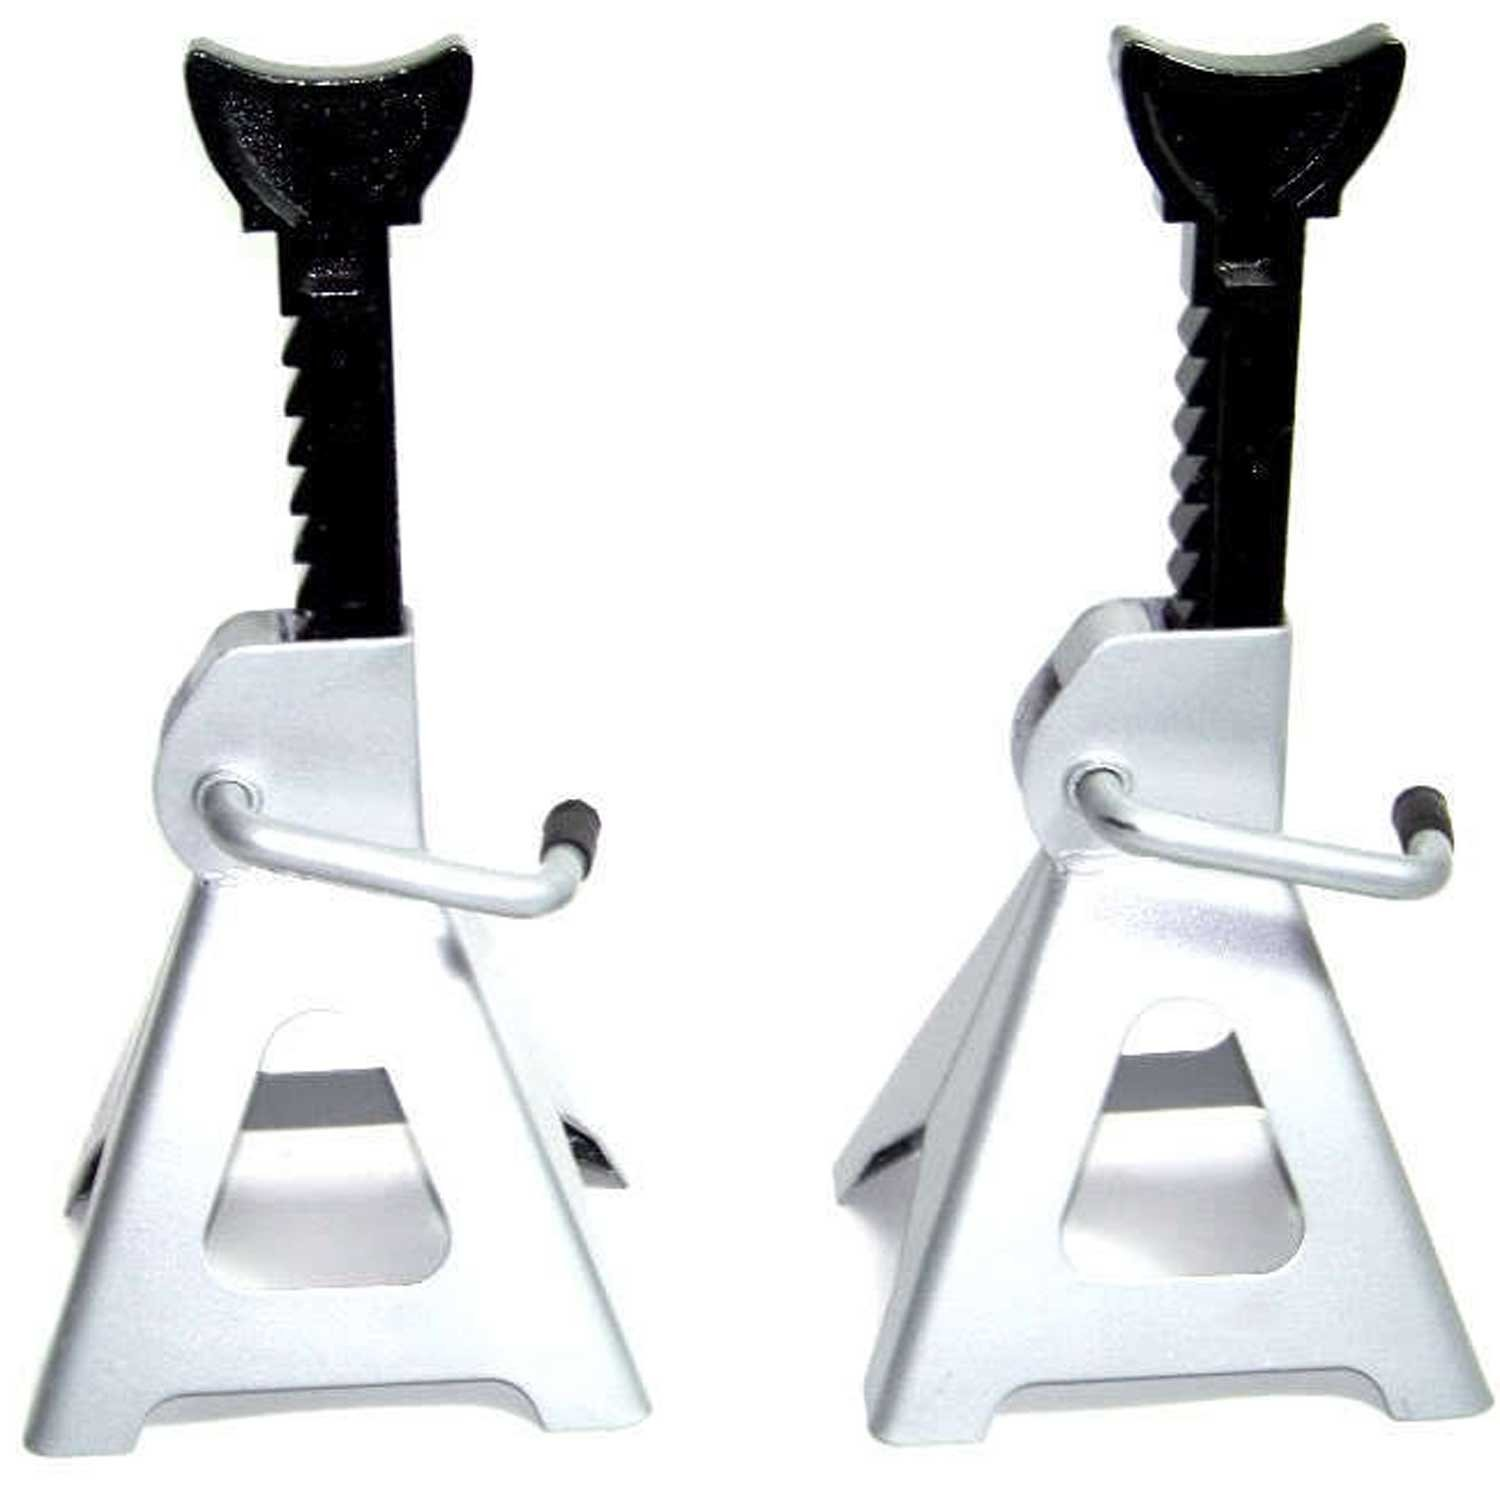 Pack of 2 Allstar Performance ALL10124 3-Ton Ratchet Jack Stand,